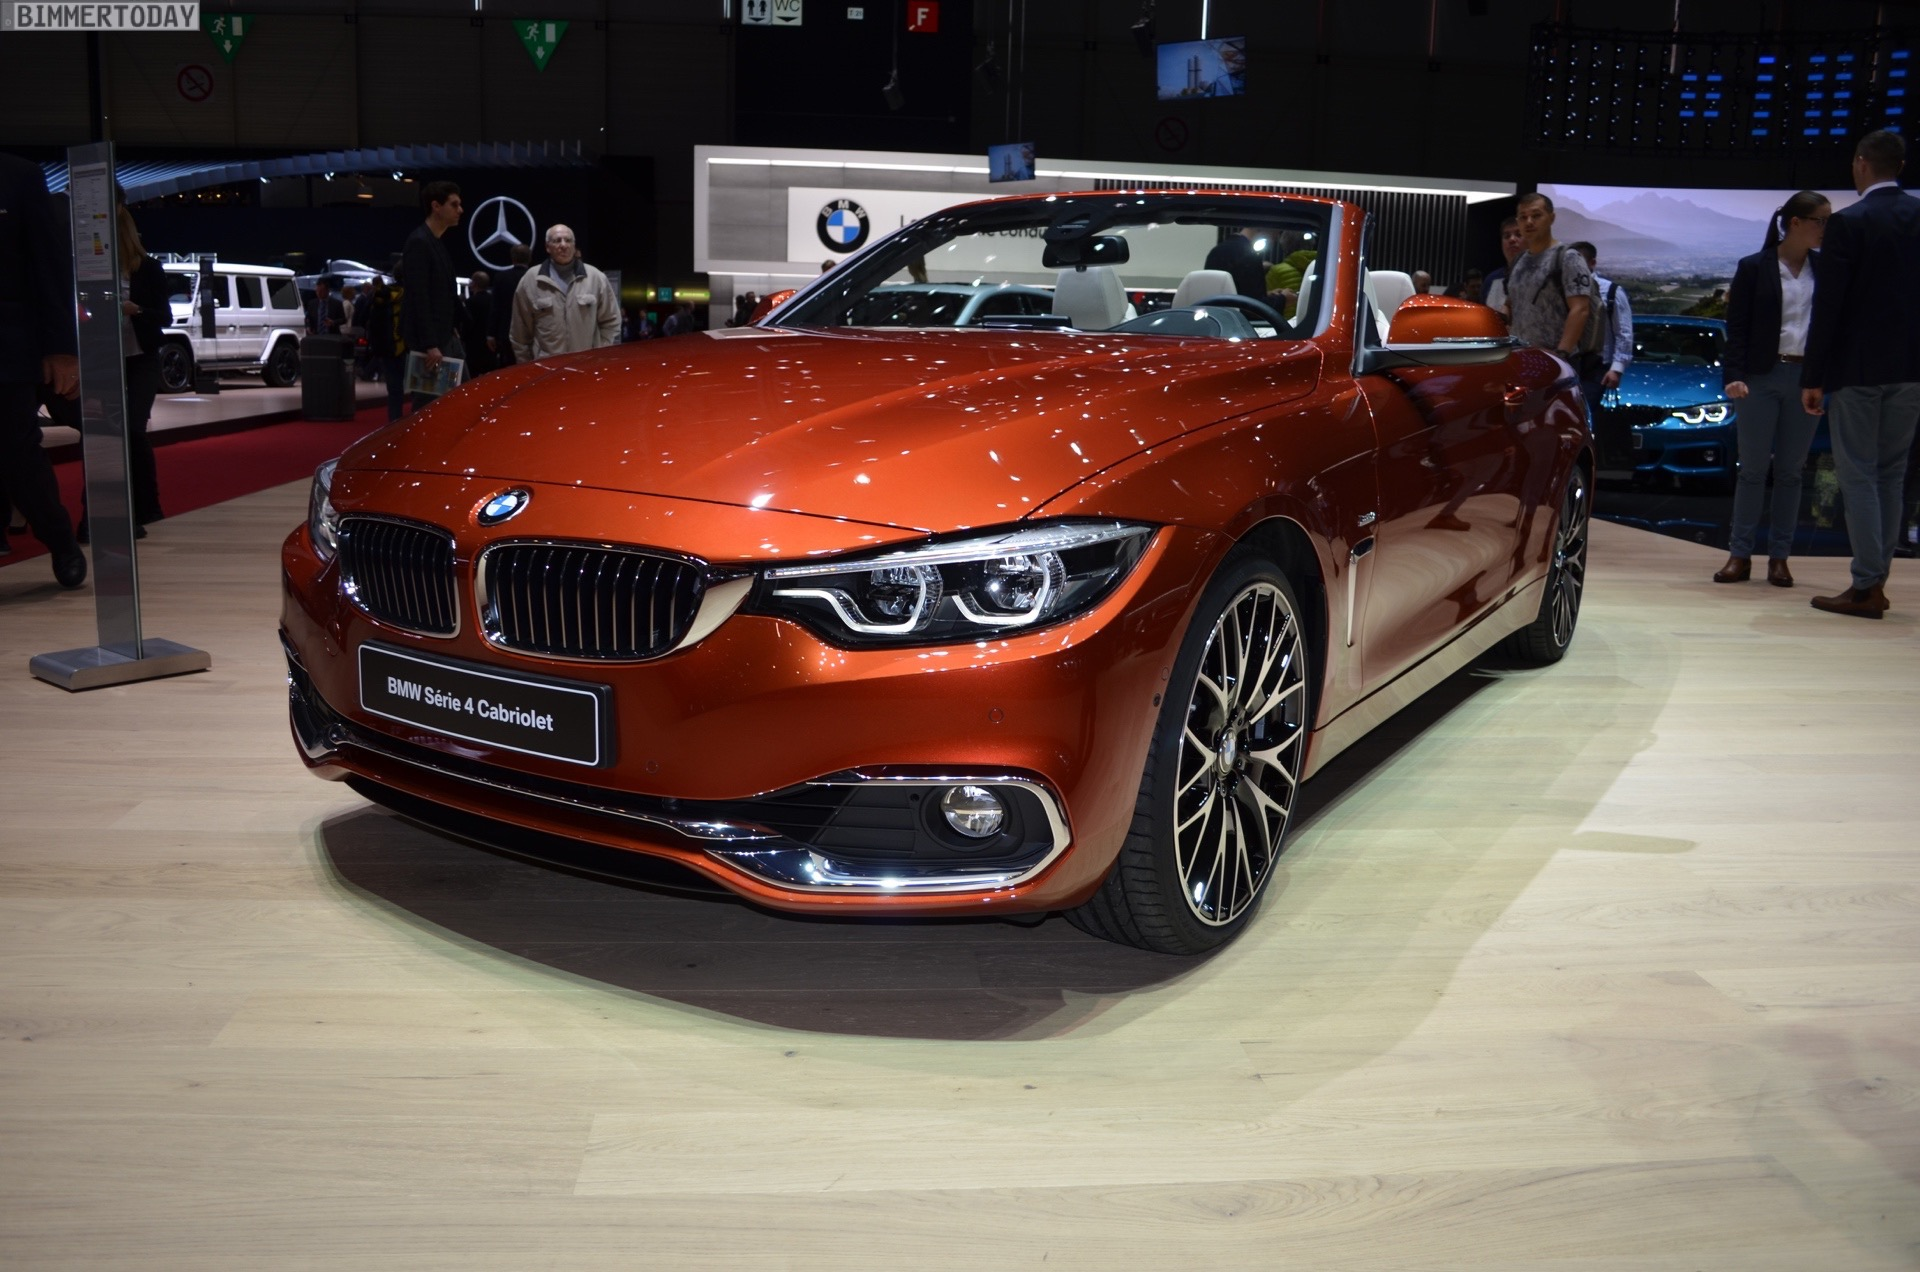 Bmw 428i Convertible 2017 >> 2017 Geneva: BMW 4 Series Convertible facelift in Sunburst Orange